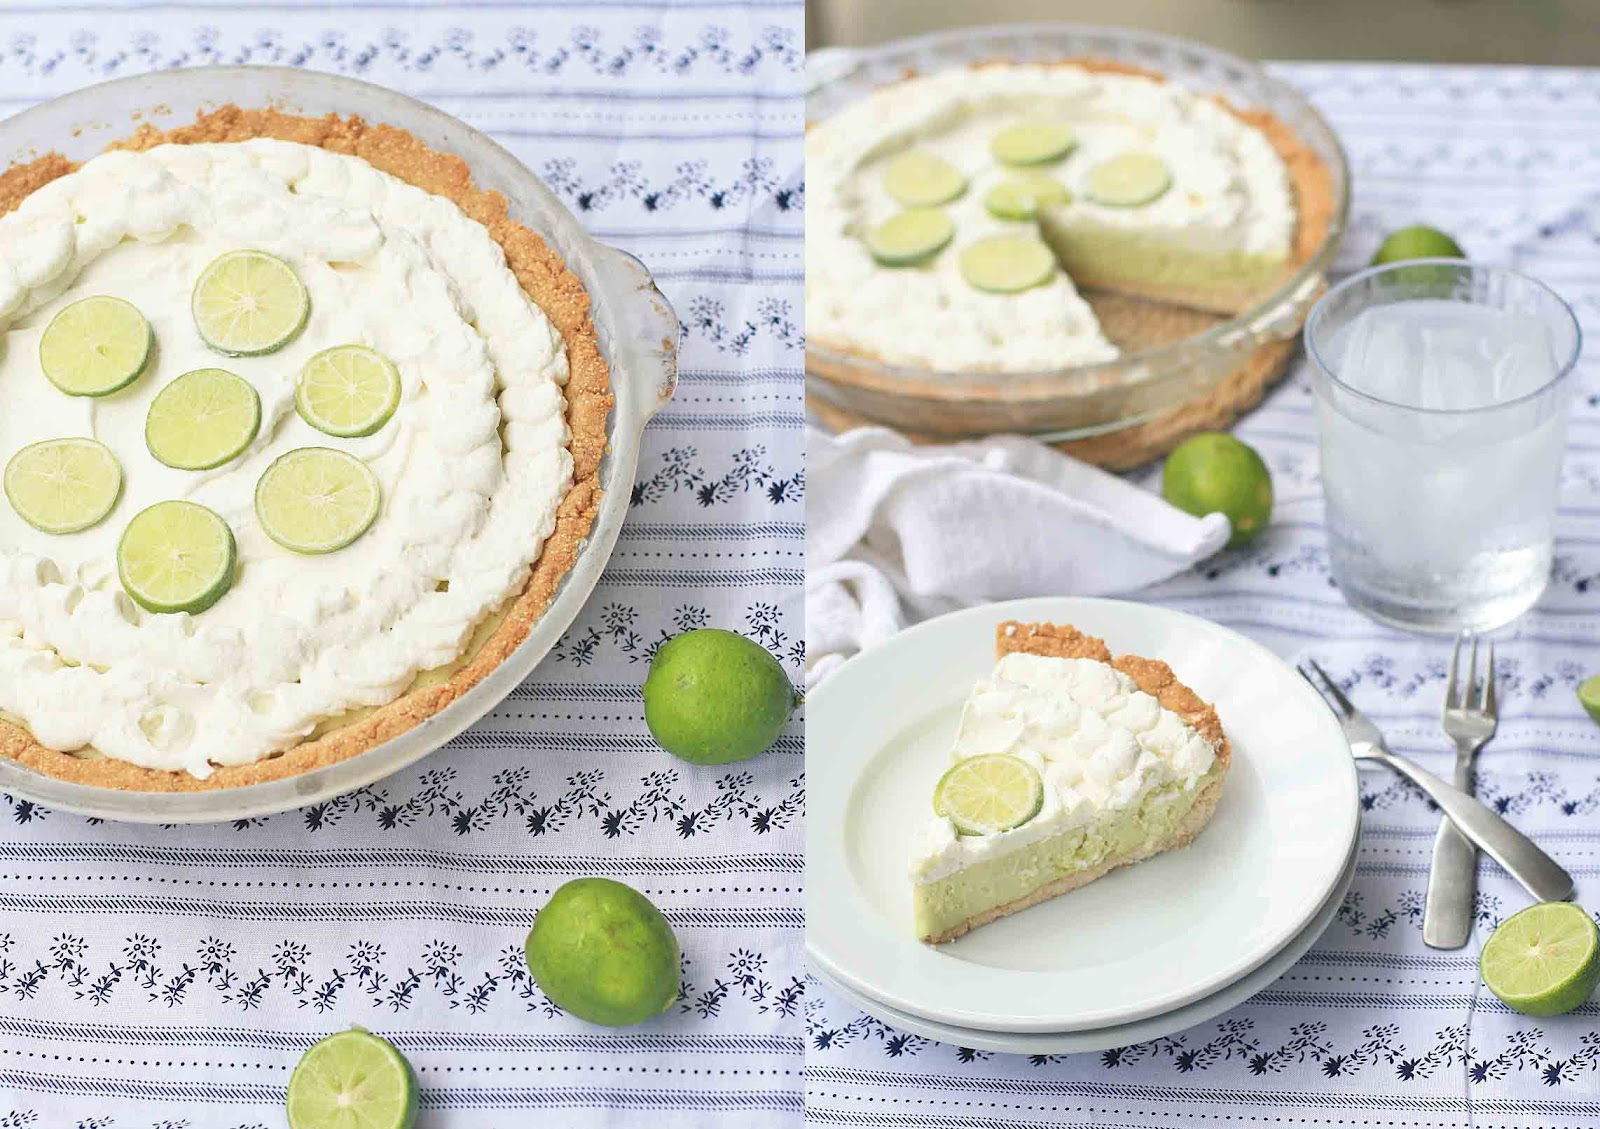 The Barefoot Contessa's Frozen Key Lime Pie, Gluten-Free | Girl Cooks ...